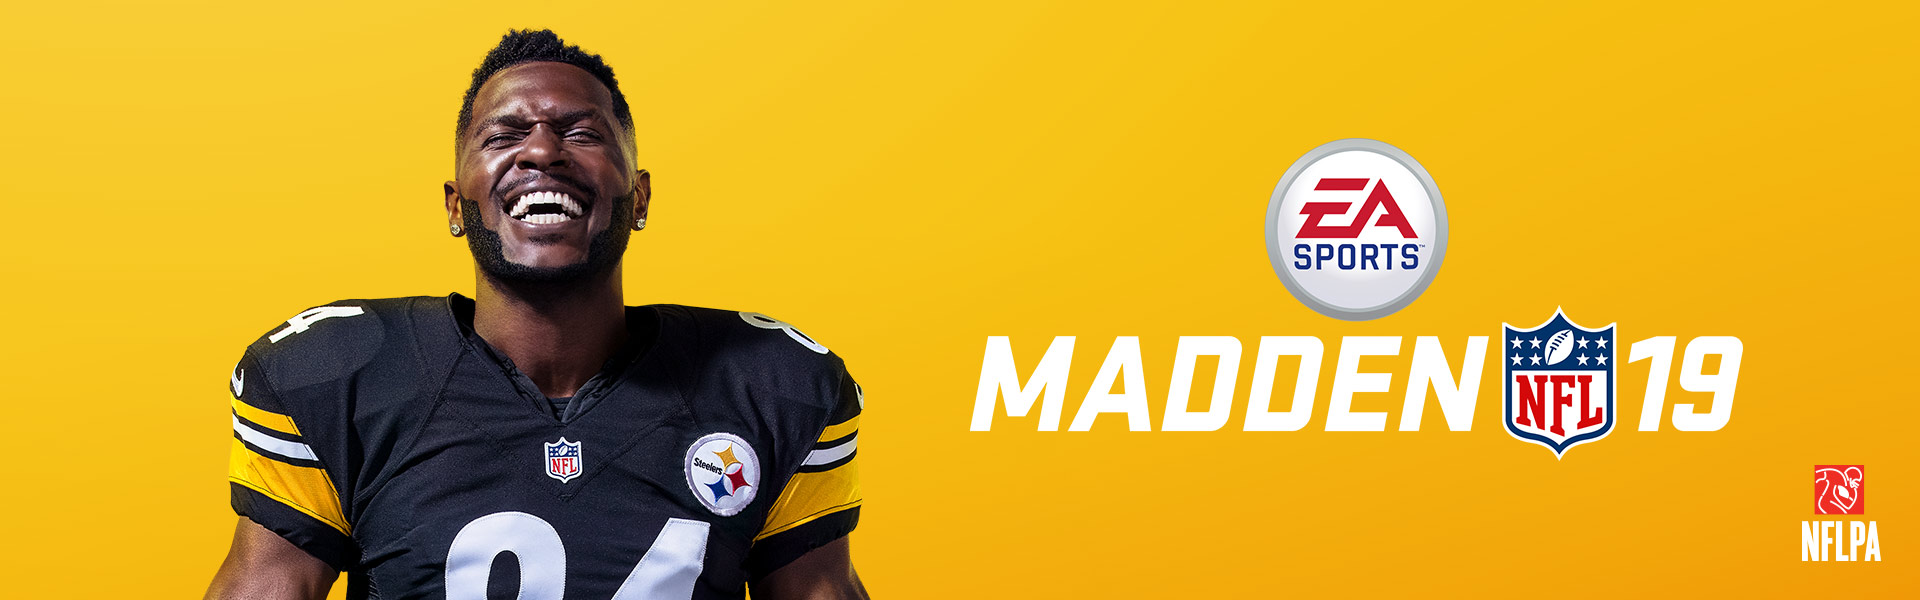 EA Sports Madden NFL 19, Antonio Brown의 의기양양한 웃음